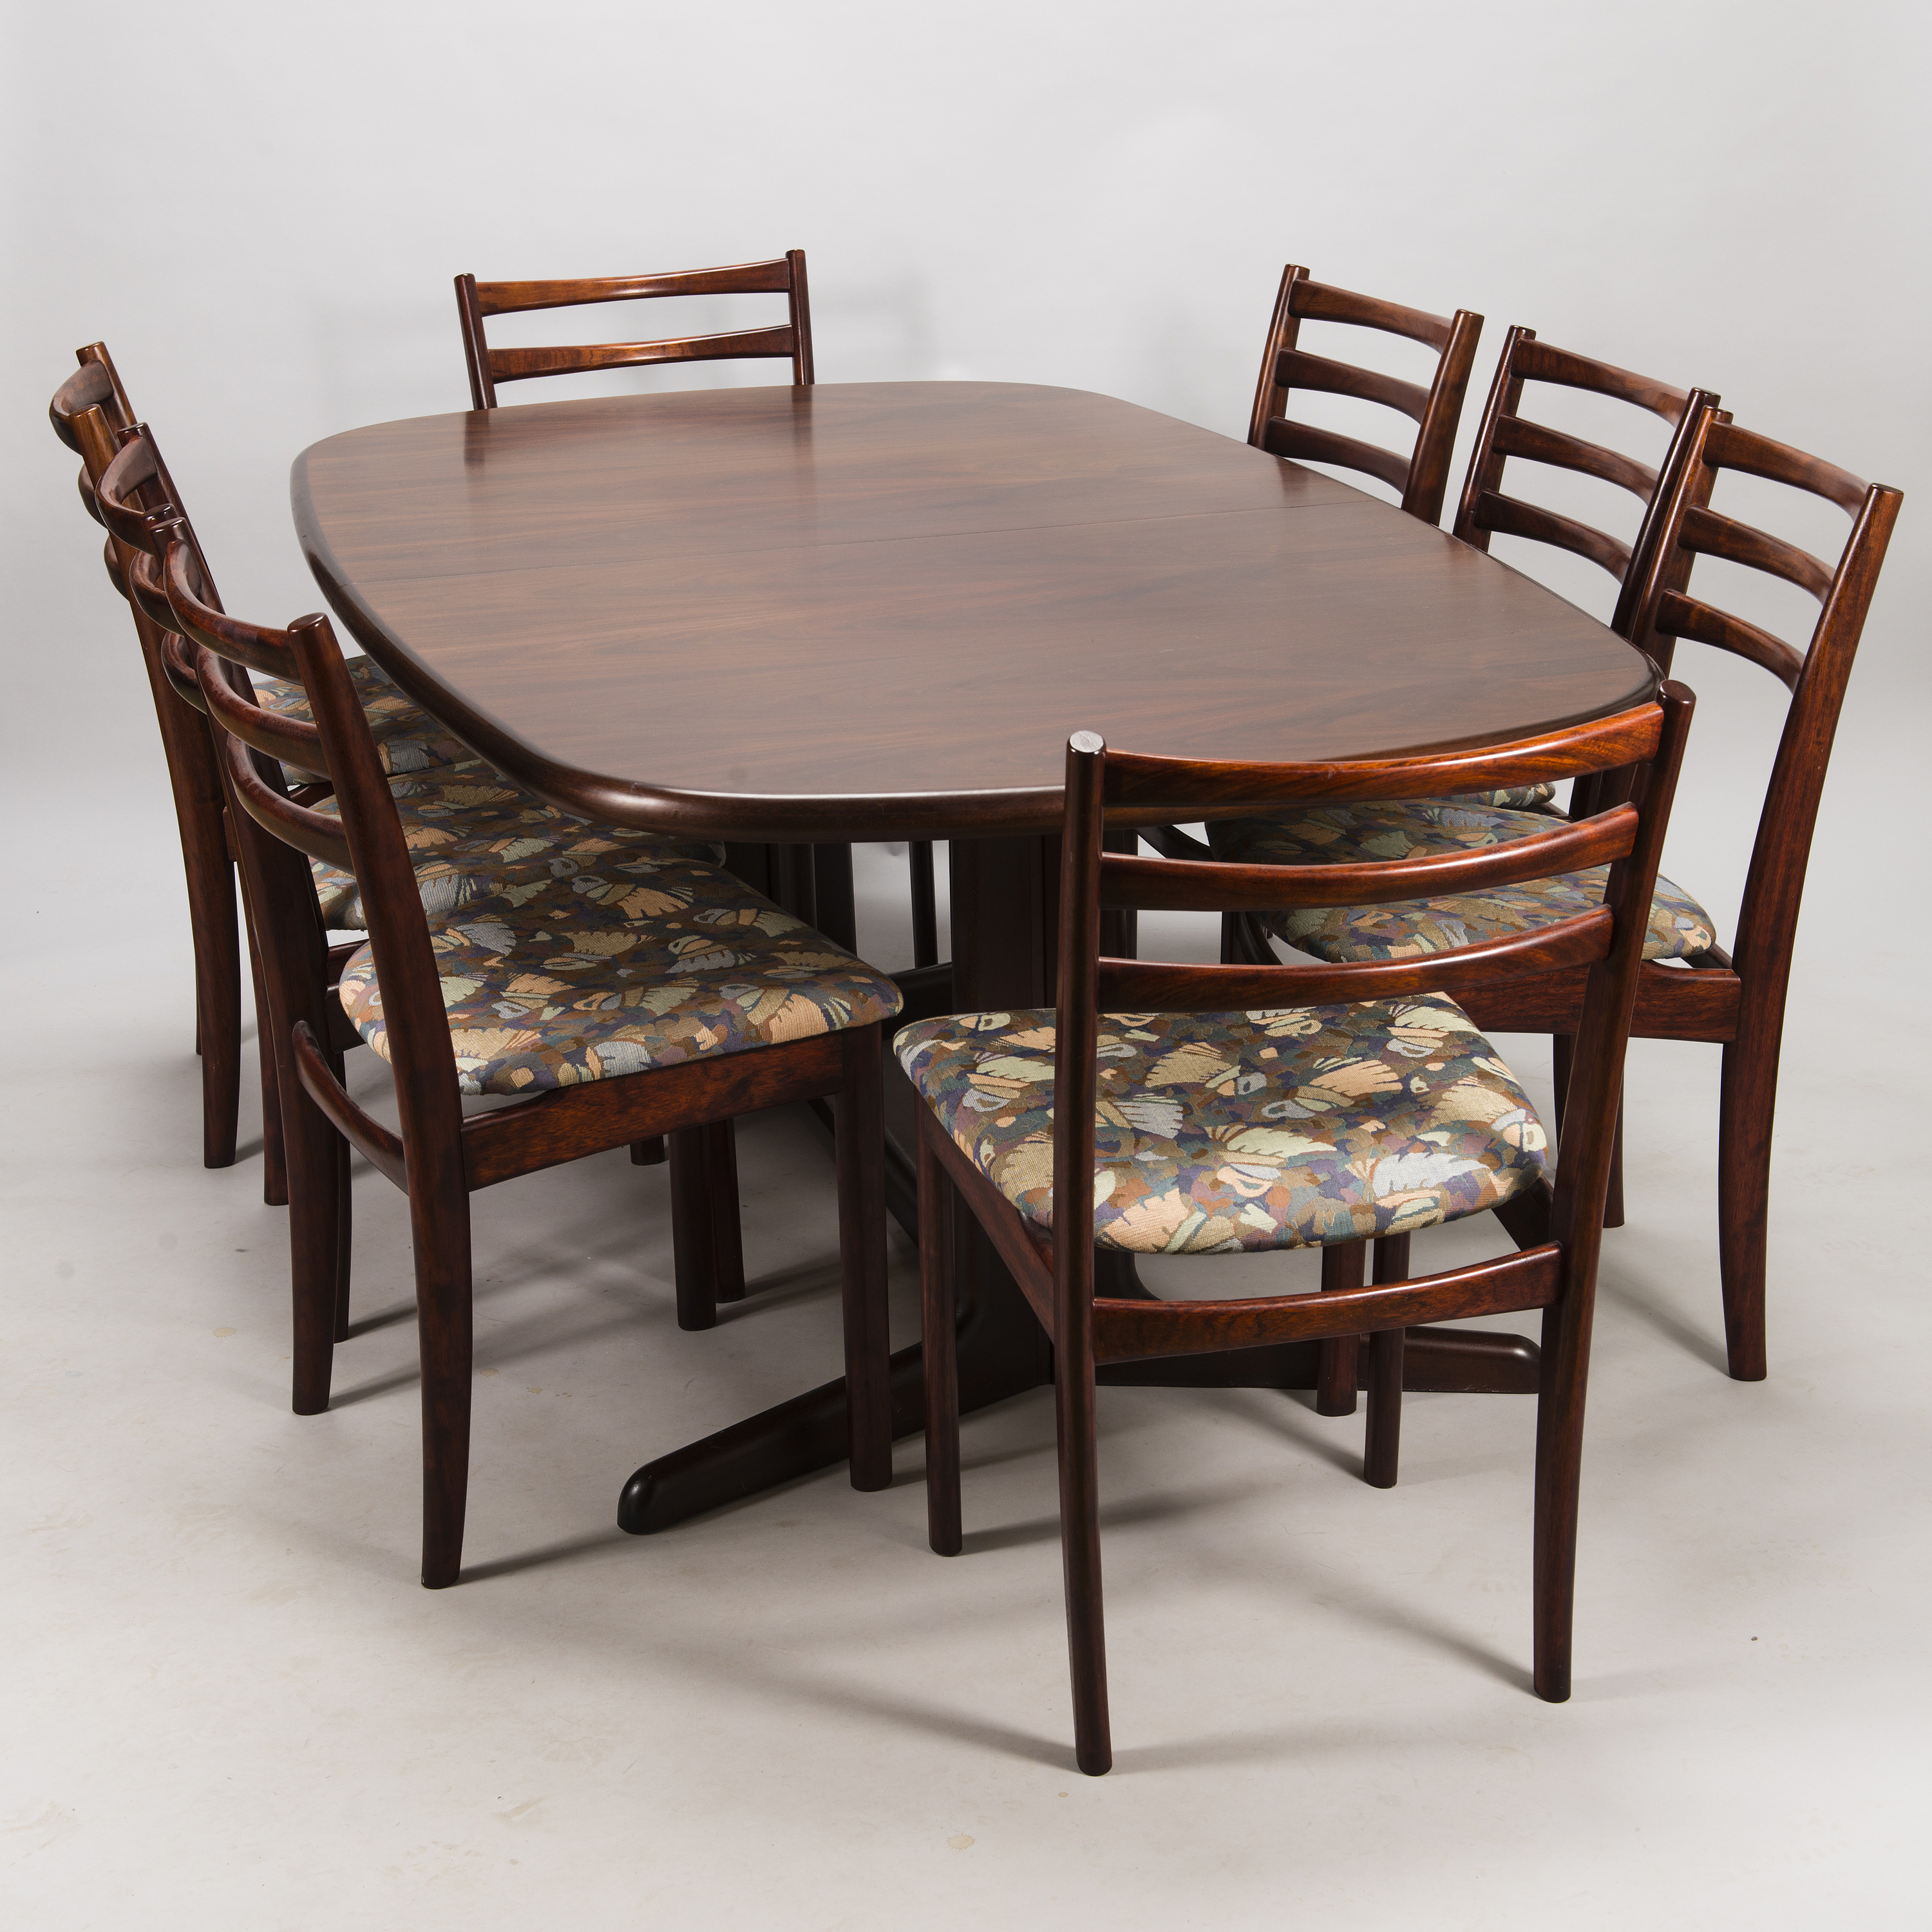 Fantastic Danish 1980 90S Dining Table With Eight Chairs Bukowskis Interior Design Ideas Tzicisoteloinfo